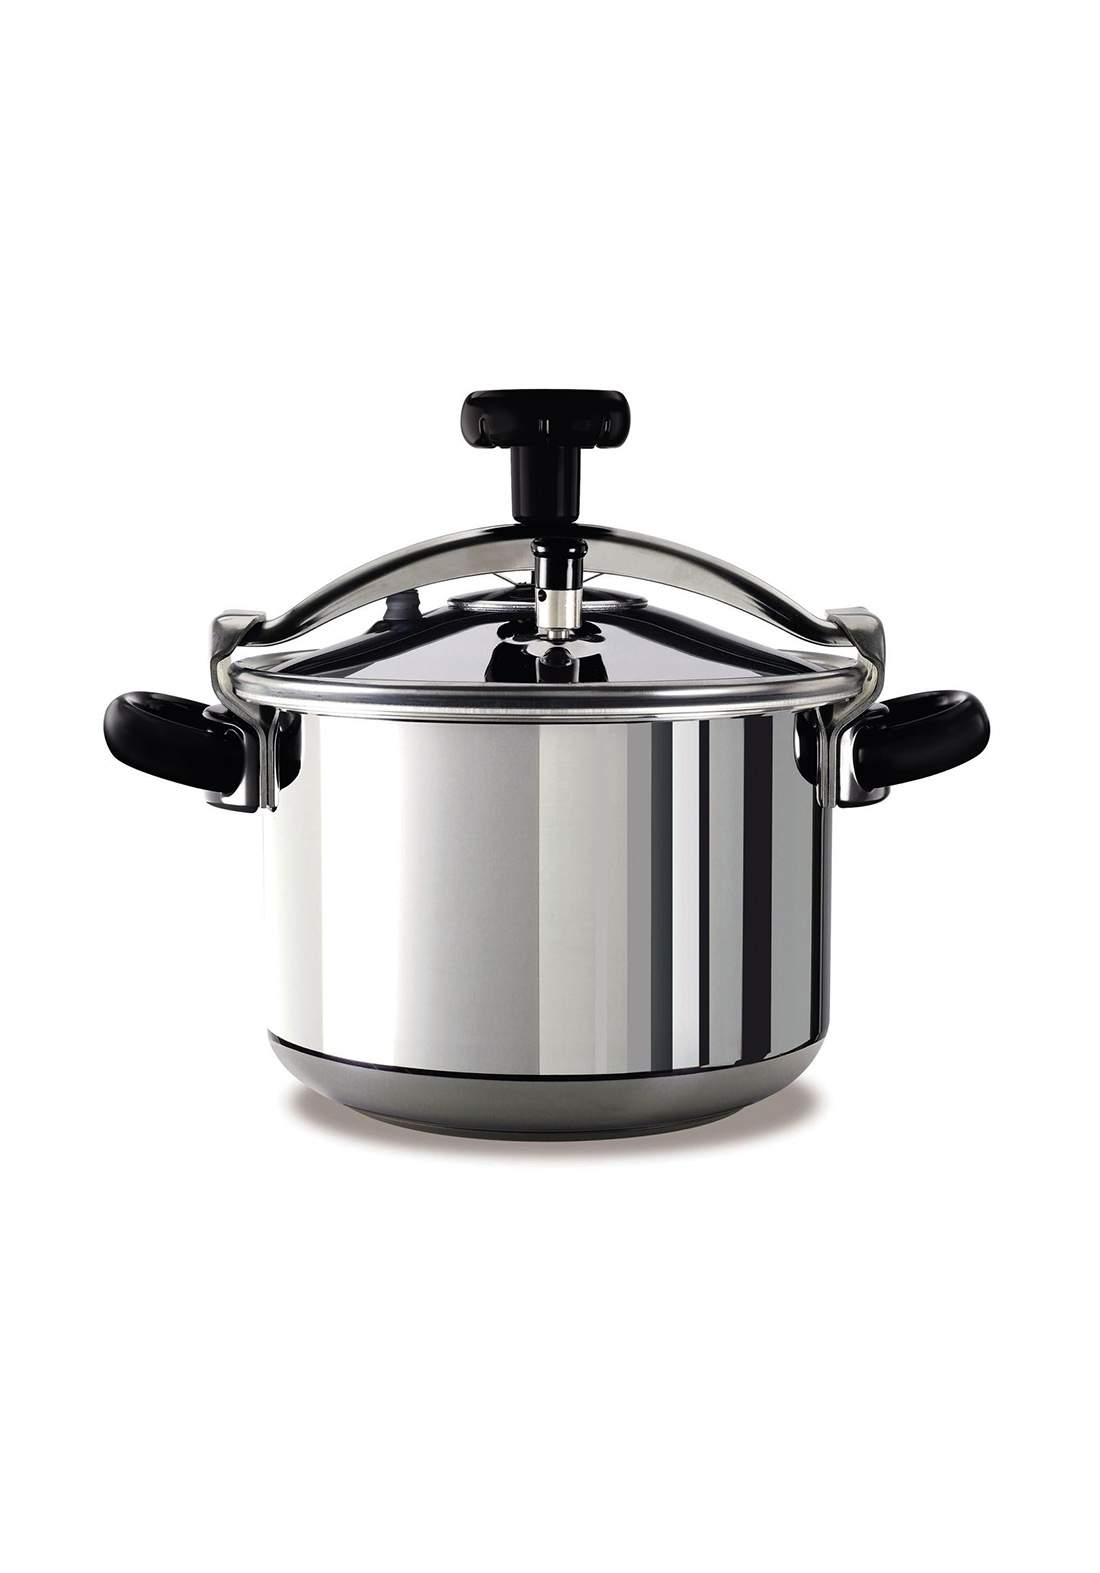 Tefal P0531634 Pc Clamp St Steel Authentic Steel 10l قدر